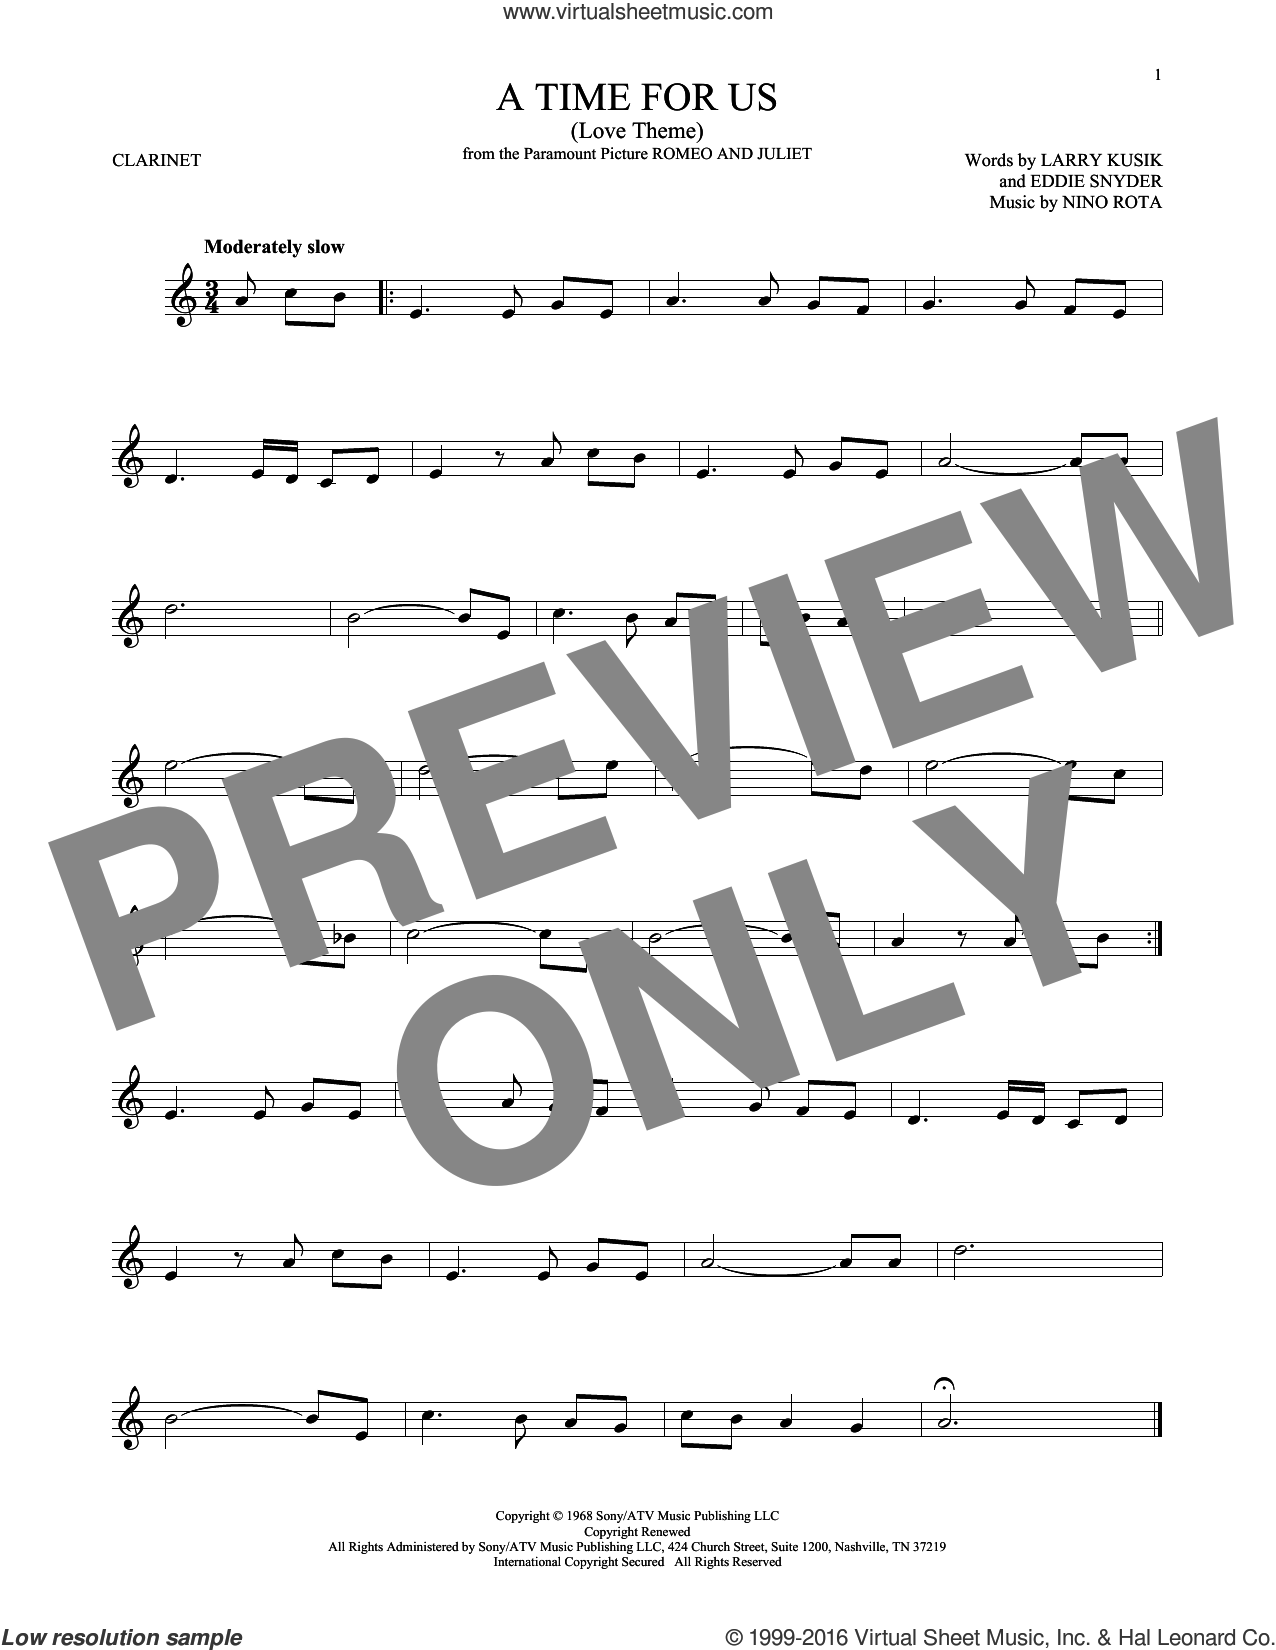 A Time For Us (Love Theme) sheet music for clarinet solo by Nino Rota, Eddie Snyder and Larry Kusik, intermediate skill level